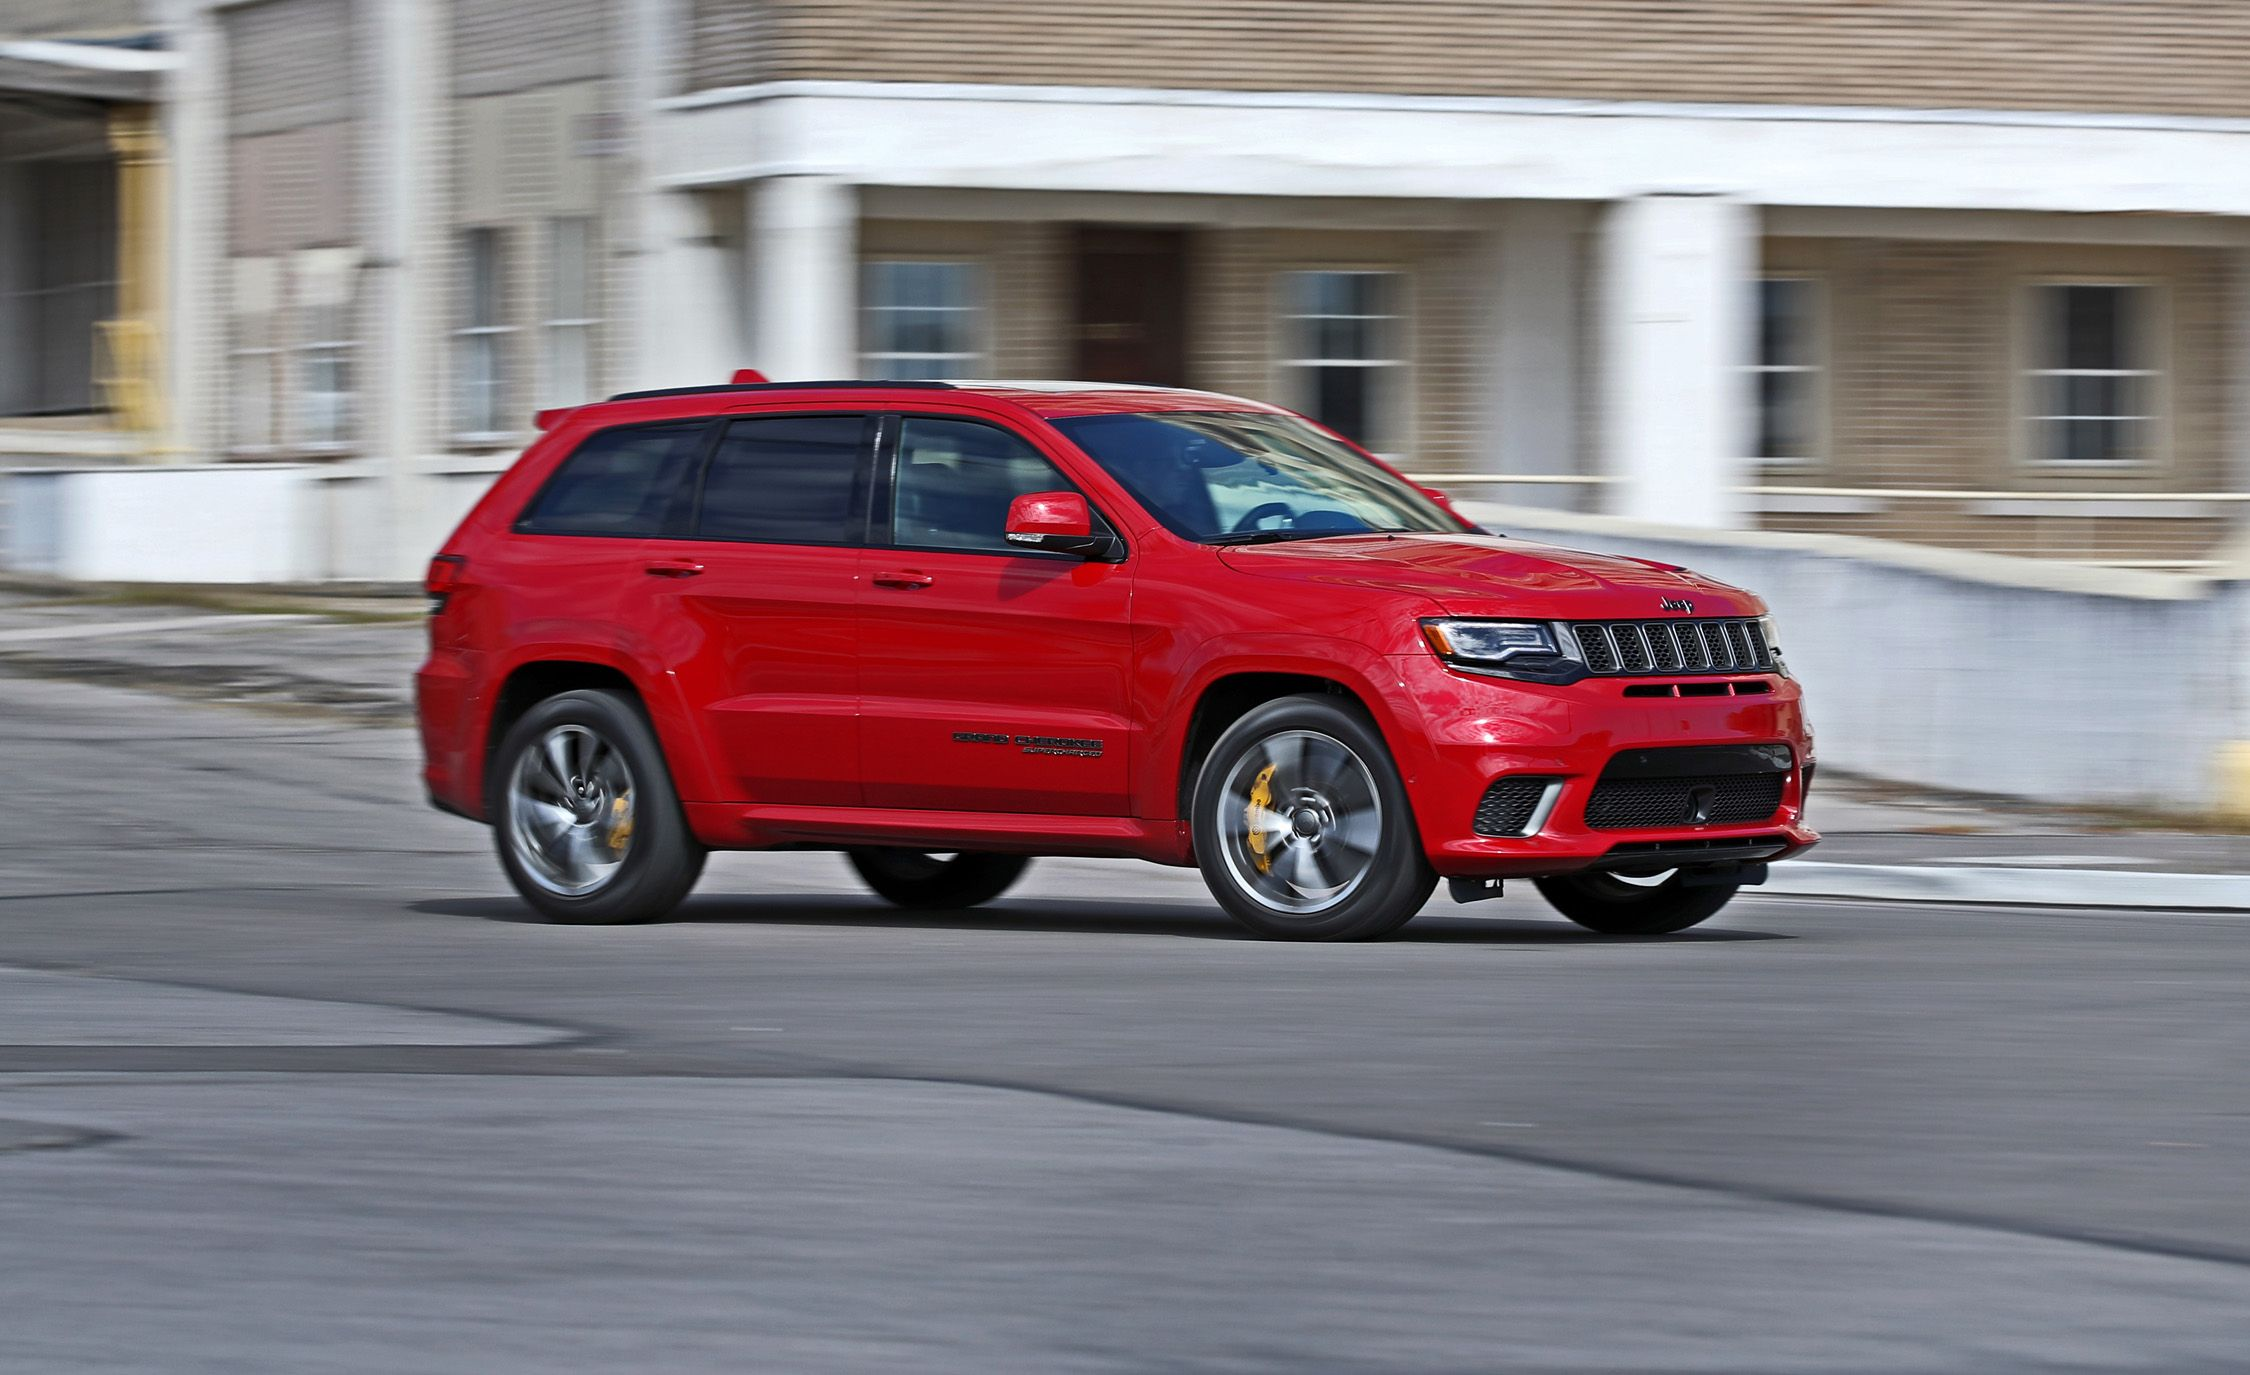 jeep grand cherokee trackhawk reviews jeep grand cherokee trackhawk price photos and specs. Black Bedroom Furniture Sets. Home Design Ideas